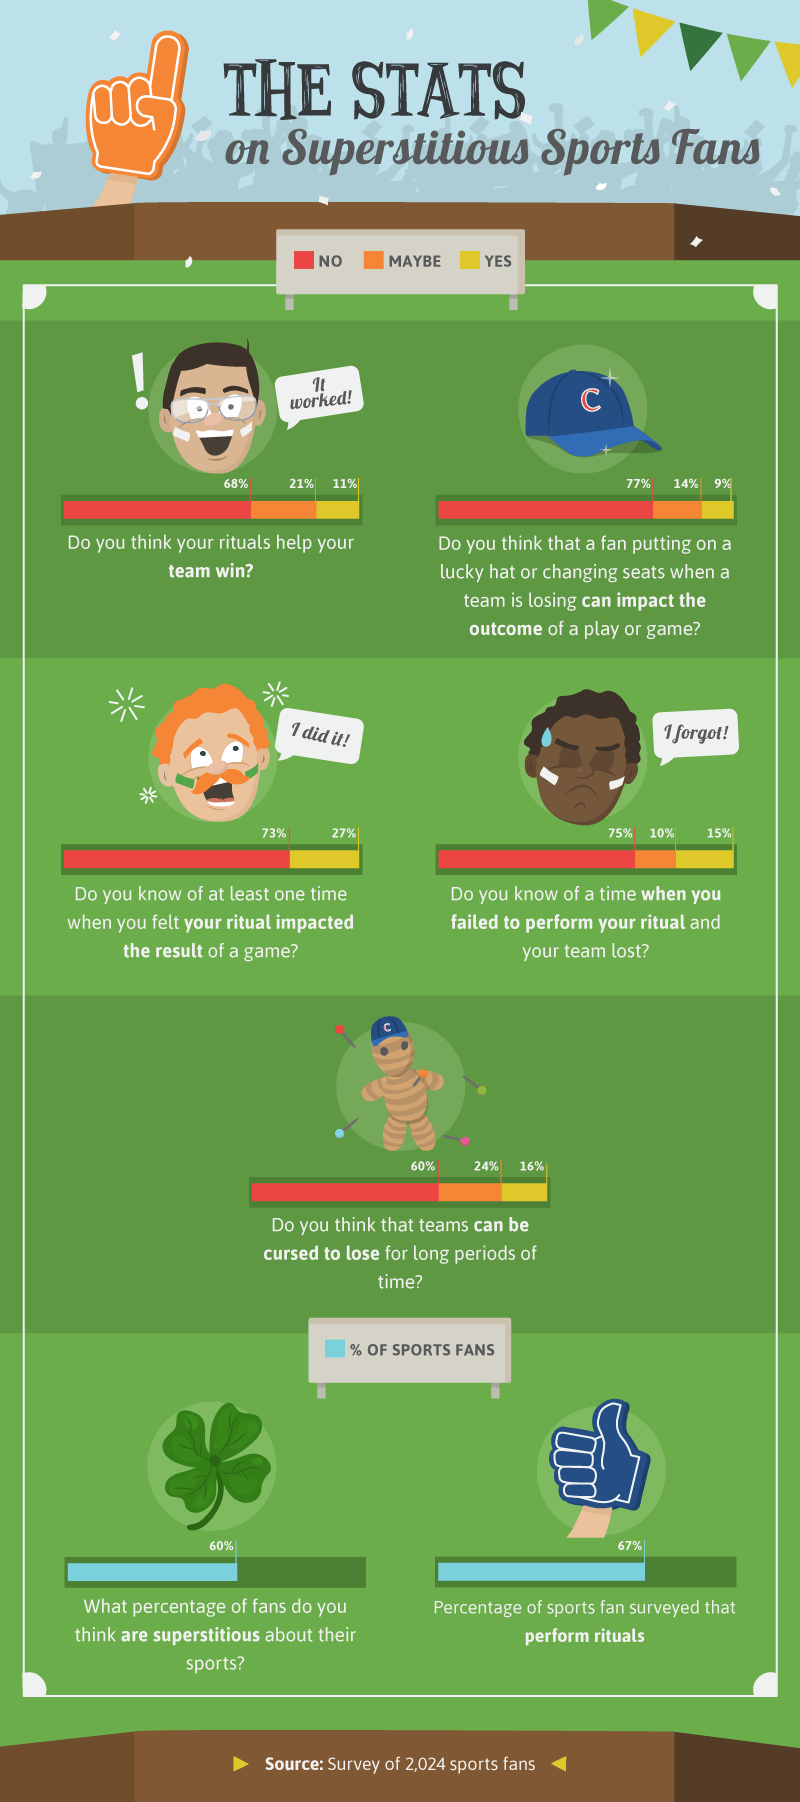 The Stats: Superstitious Sports Fans